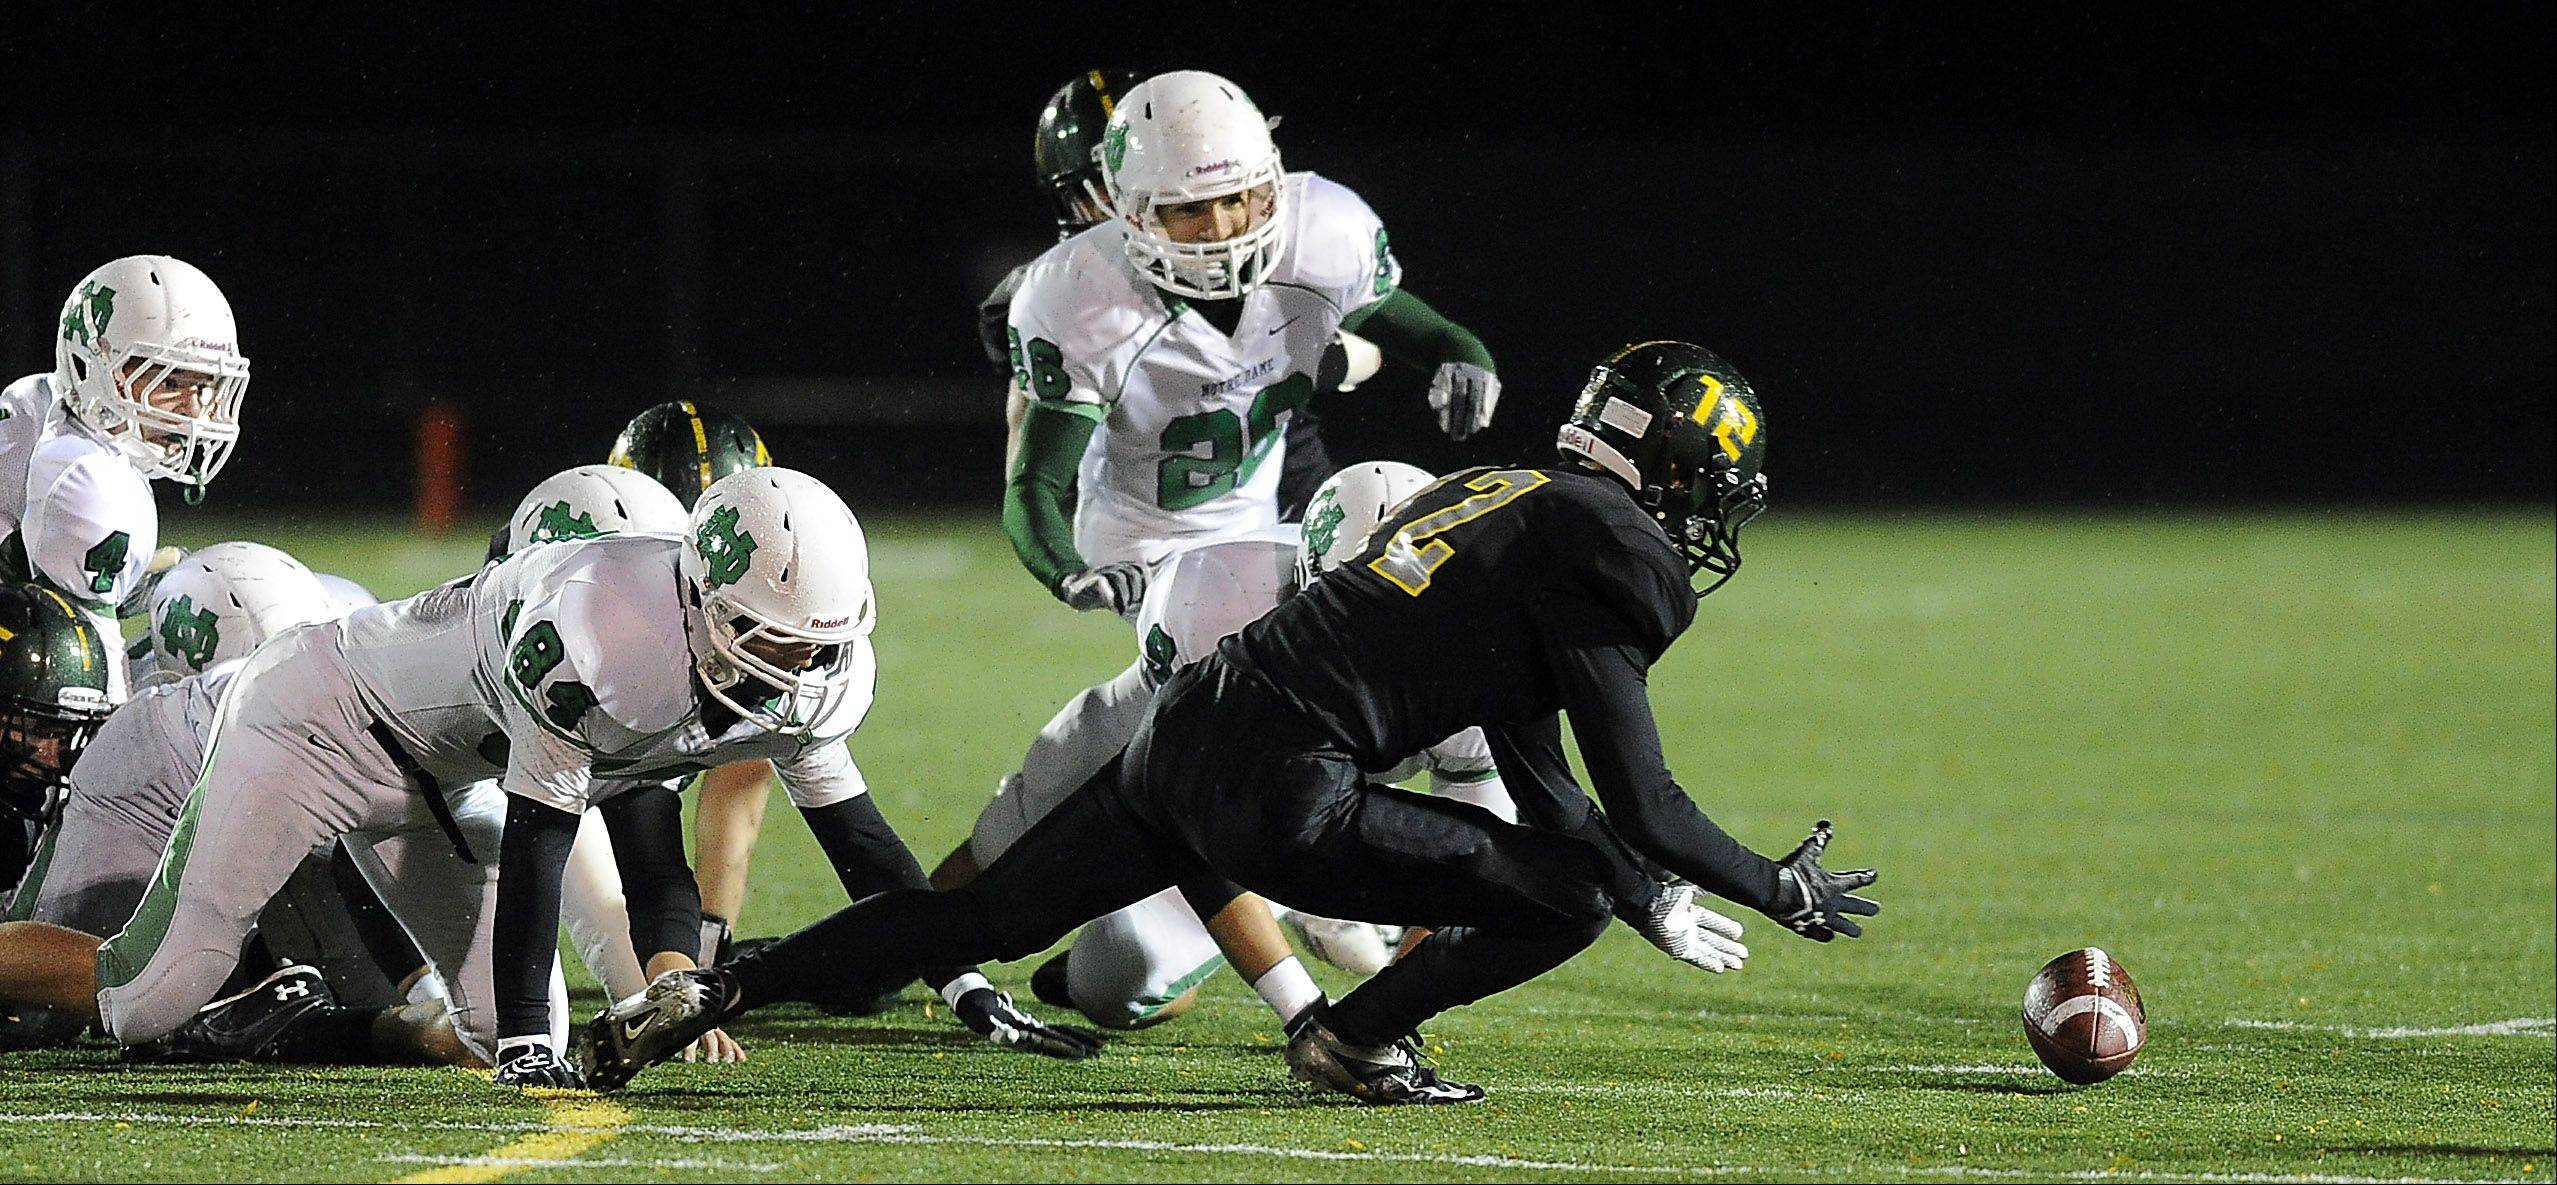 Fremd's Max Schroll recovers a fumble on a punt against Notre Dame in the first half.